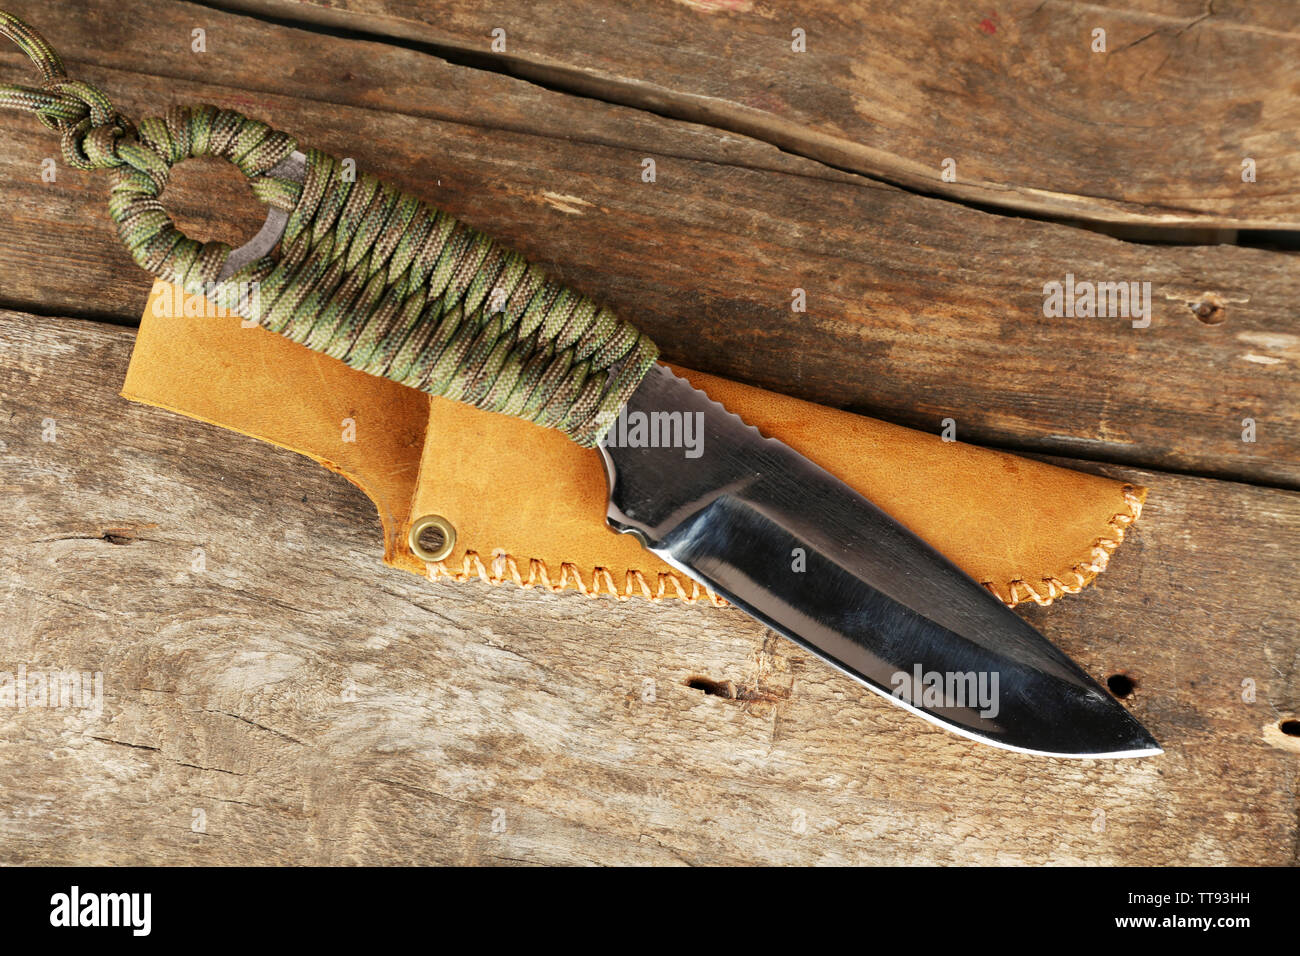 Hunting knife on wooden background - Stock Image